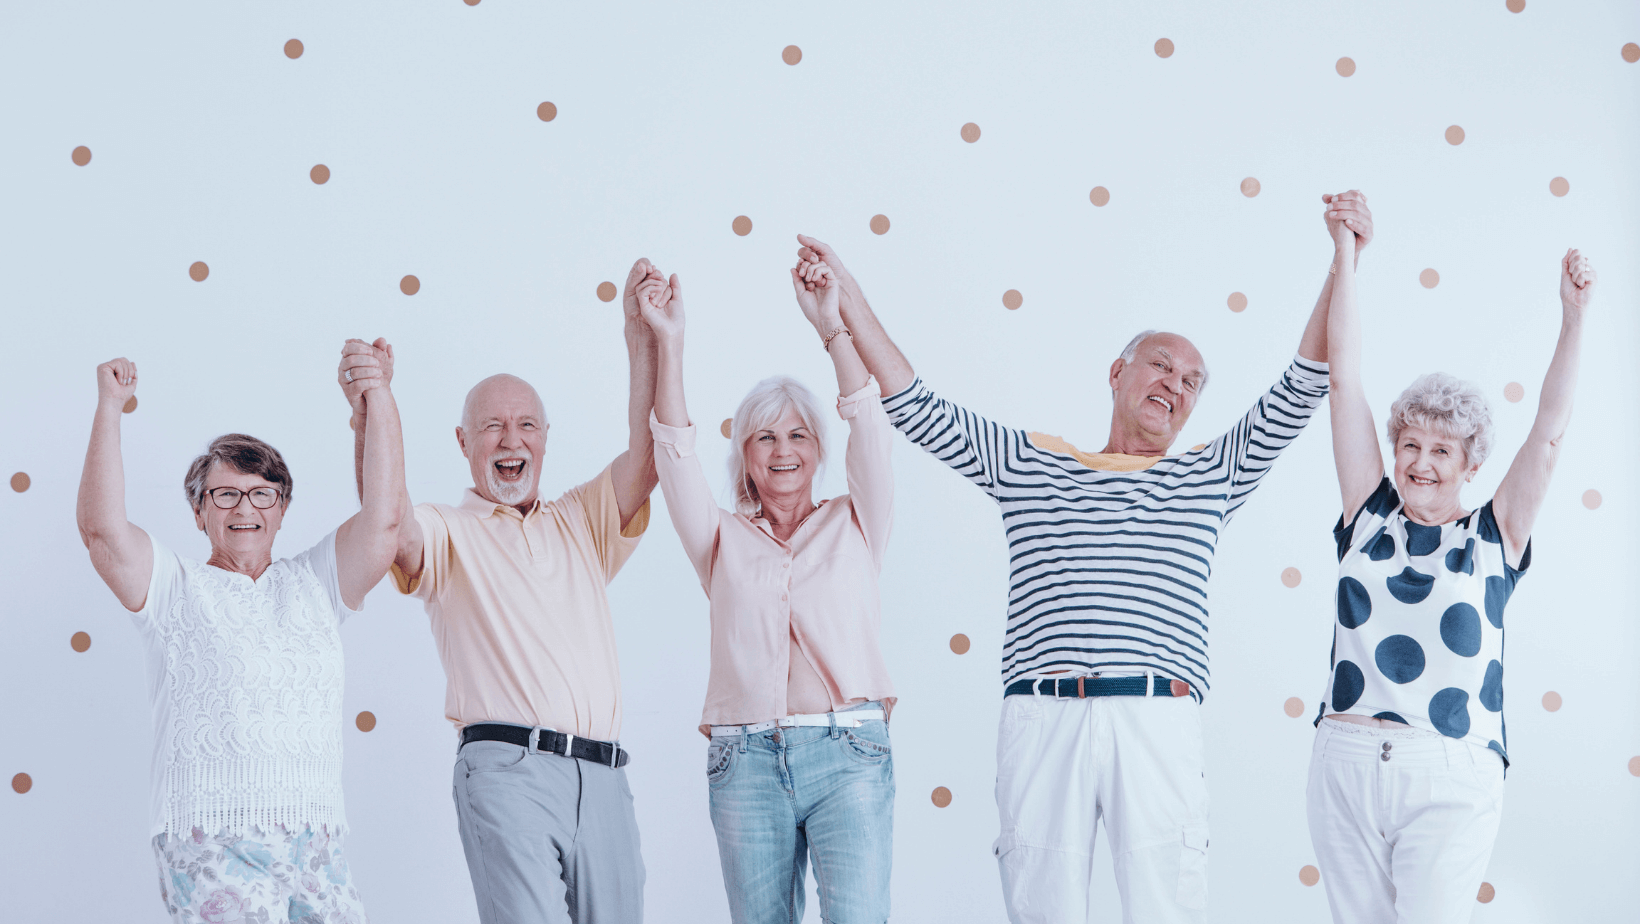 happy senior citizens celebrating with arms raised in the air